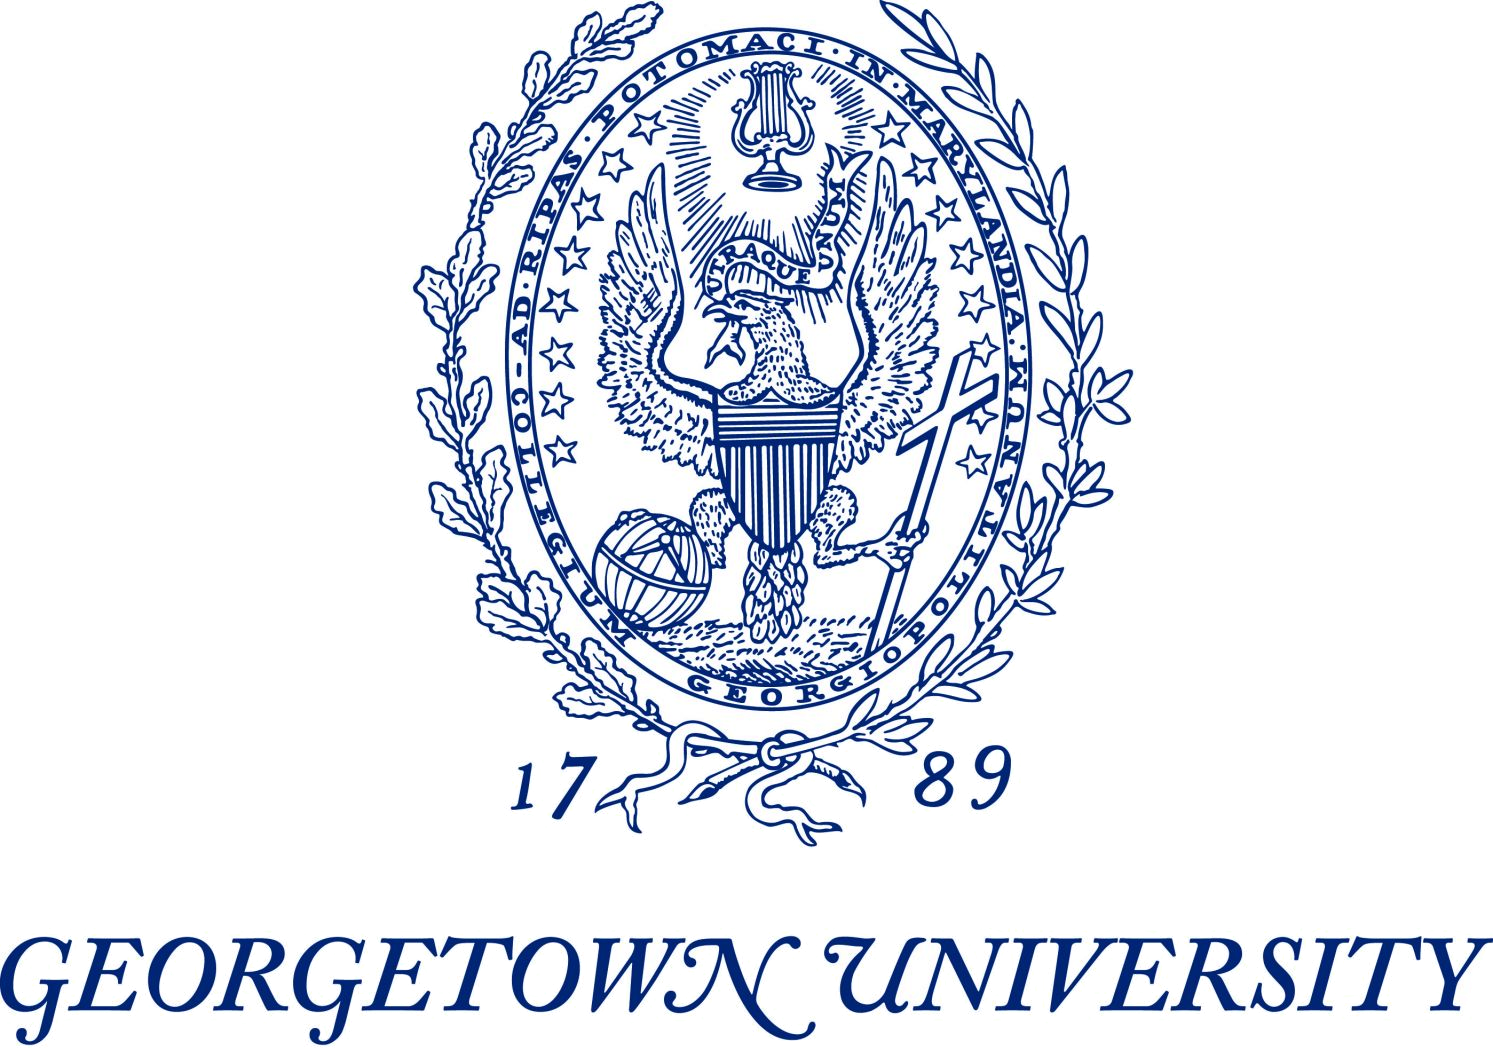 georgetown university matriculation